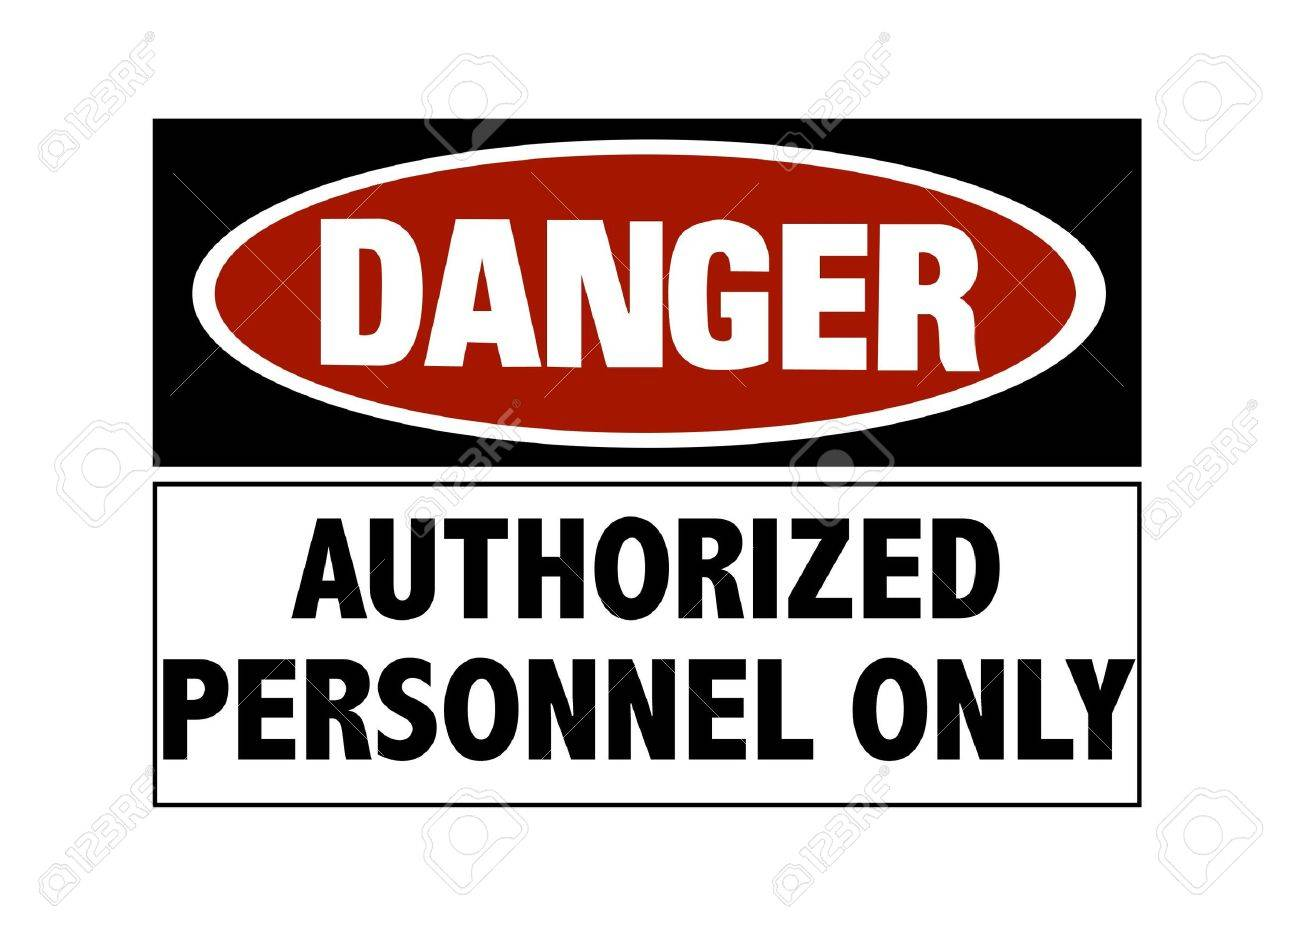 Danger sign - hard hats must be worn Stock Photo - 6637475